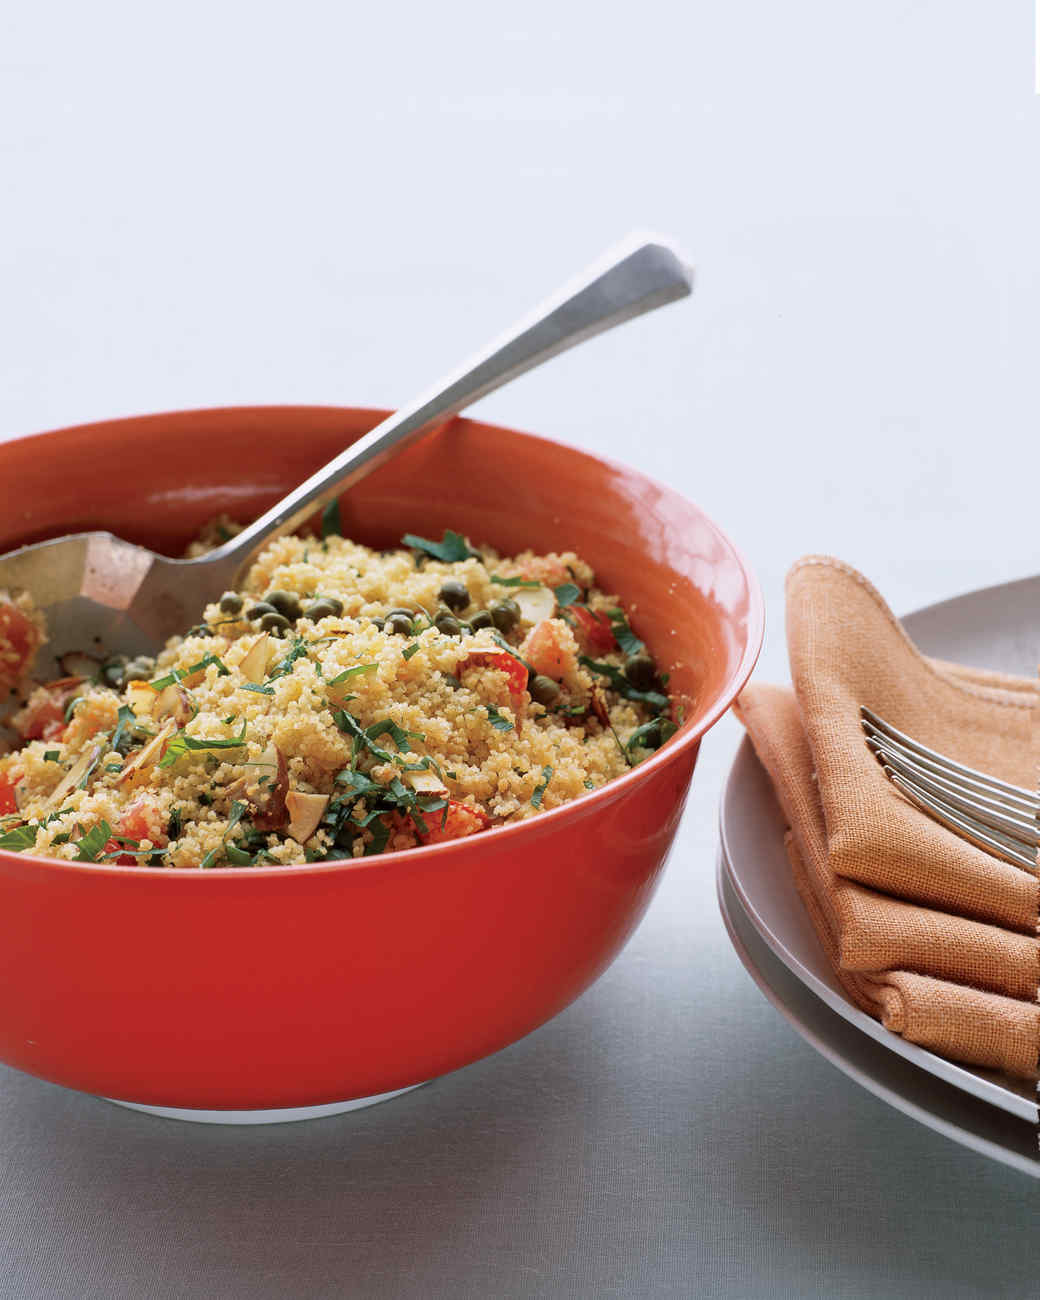 Whole-Wheat Couscous with Almonds